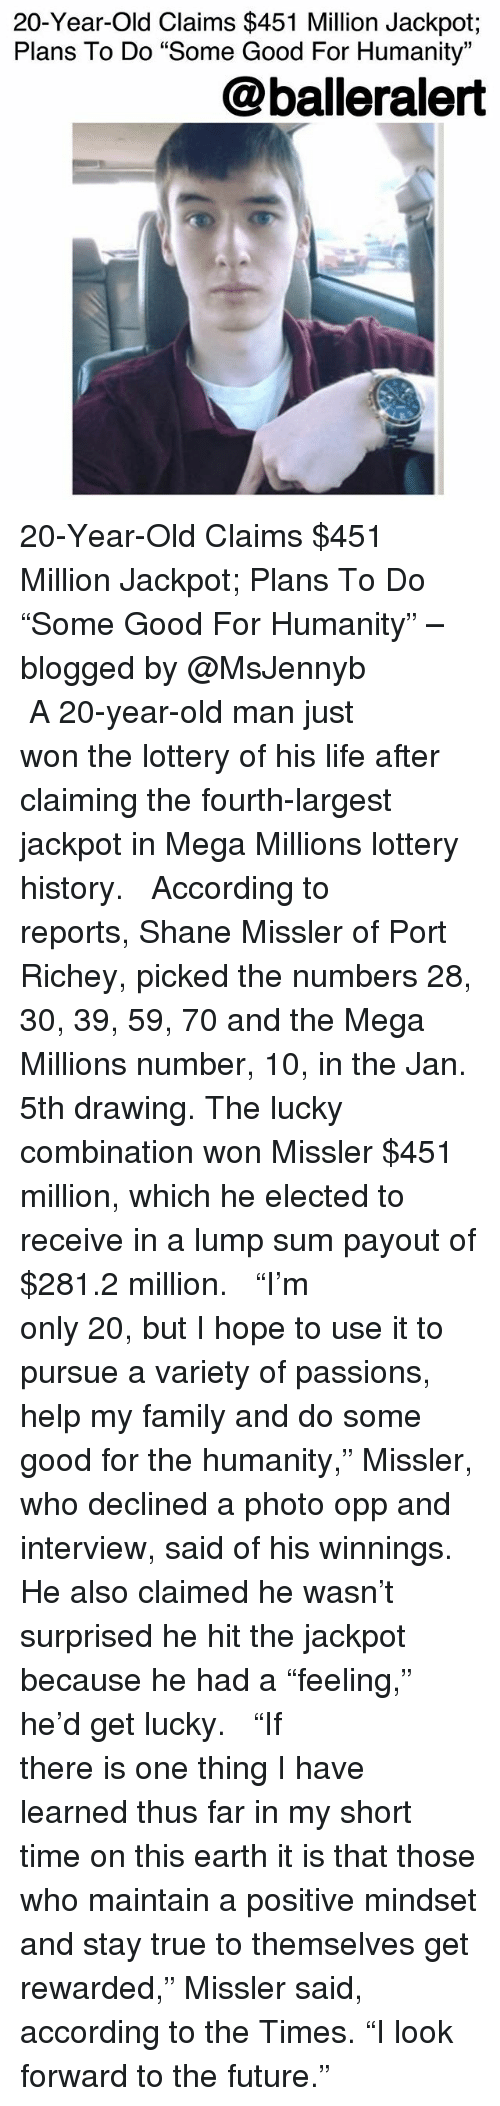 """Family, Future, and Life: 20-Year-Old Claims $451 Million Jackpot;  Plans To Do """"Some Good For Humanity""""  @balleralert 20-Year-Old Claims $451 Million Jackpot; Plans To Do """"Some Good For Humanity"""" – blogged by @MsJennyb ⠀⠀⠀⠀⠀⠀⠀ ⠀⠀⠀⠀⠀⠀⠀ A 20-year-old man just won the lottery of his life after claiming the fourth-largest jackpot in Mega Millions lottery history. ⠀⠀⠀⠀⠀⠀⠀ ⠀⠀⠀⠀⠀⠀⠀ According to reports, Shane Missler of Port Richey, picked the numbers 28, 30, 39, 59, 70 and the Mega Millions number, 10, in the Jan. 5th drawing. The lucky combination won Missler $451 million, which he elected to receive in a lump sum payout of $281.2 million. ⠀⠀⠀⠀⠀⠀⠀ ⠀⠀⠀⠀⠀⠀⠀ """"I'm only 20, but I hope to use it to pursue a variety of passions, help my family and do some good for the humanity,"""" Missler, who declined a photo opp and interview, said of his winnings. He also claimed he wasn't surprised he hit the jackpot because he had a """"feeling,"""" he'd get lucky. ⠀⠀⠀⠀⠀⠀⠀ ⠀⠀⠀⠀⠀⠀⠀ """"If there is one thing I have learned thus far in my short time on this earth it is that those who maintain a positive mindset and stay true to themselves get rewarded,"""" Missler said, according to the Times. """"I look forward to the future."""""""